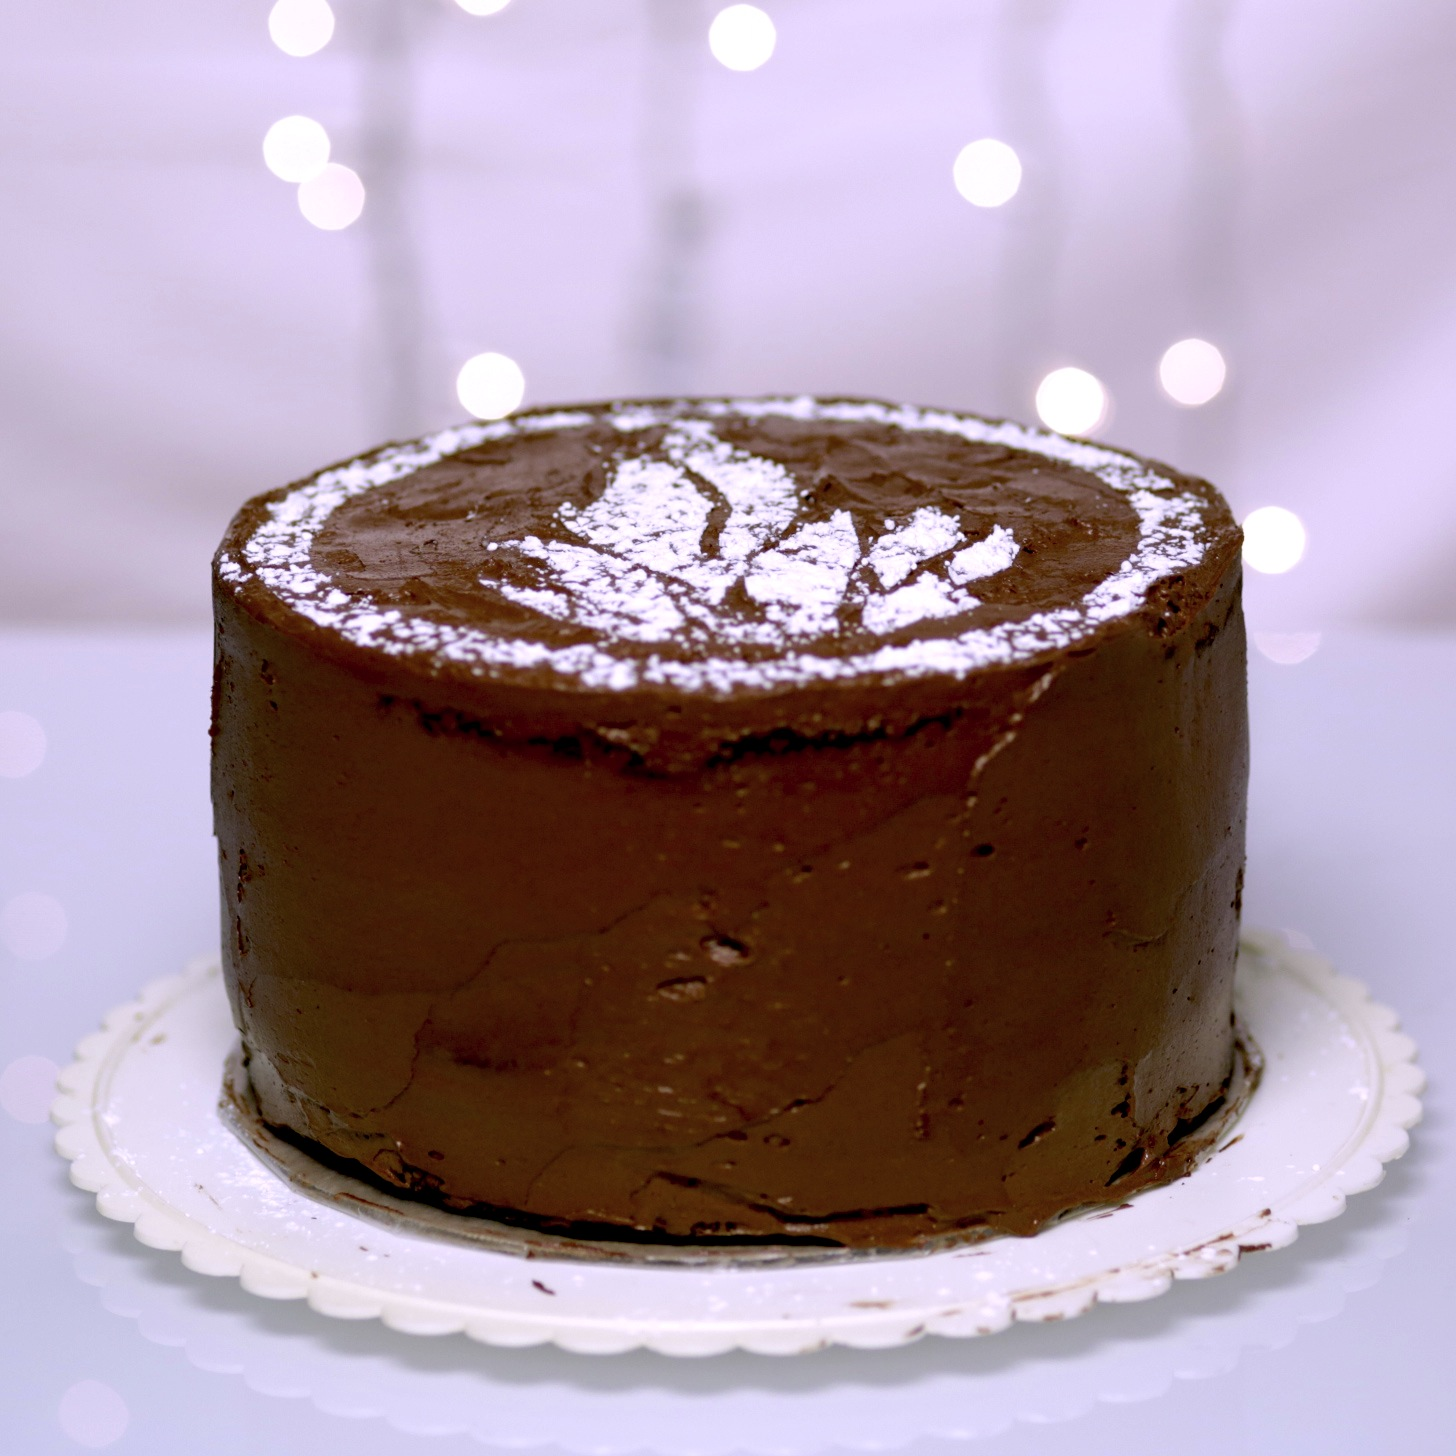 ... cake recipe for you start with the chocolate cake recipe of your Cake